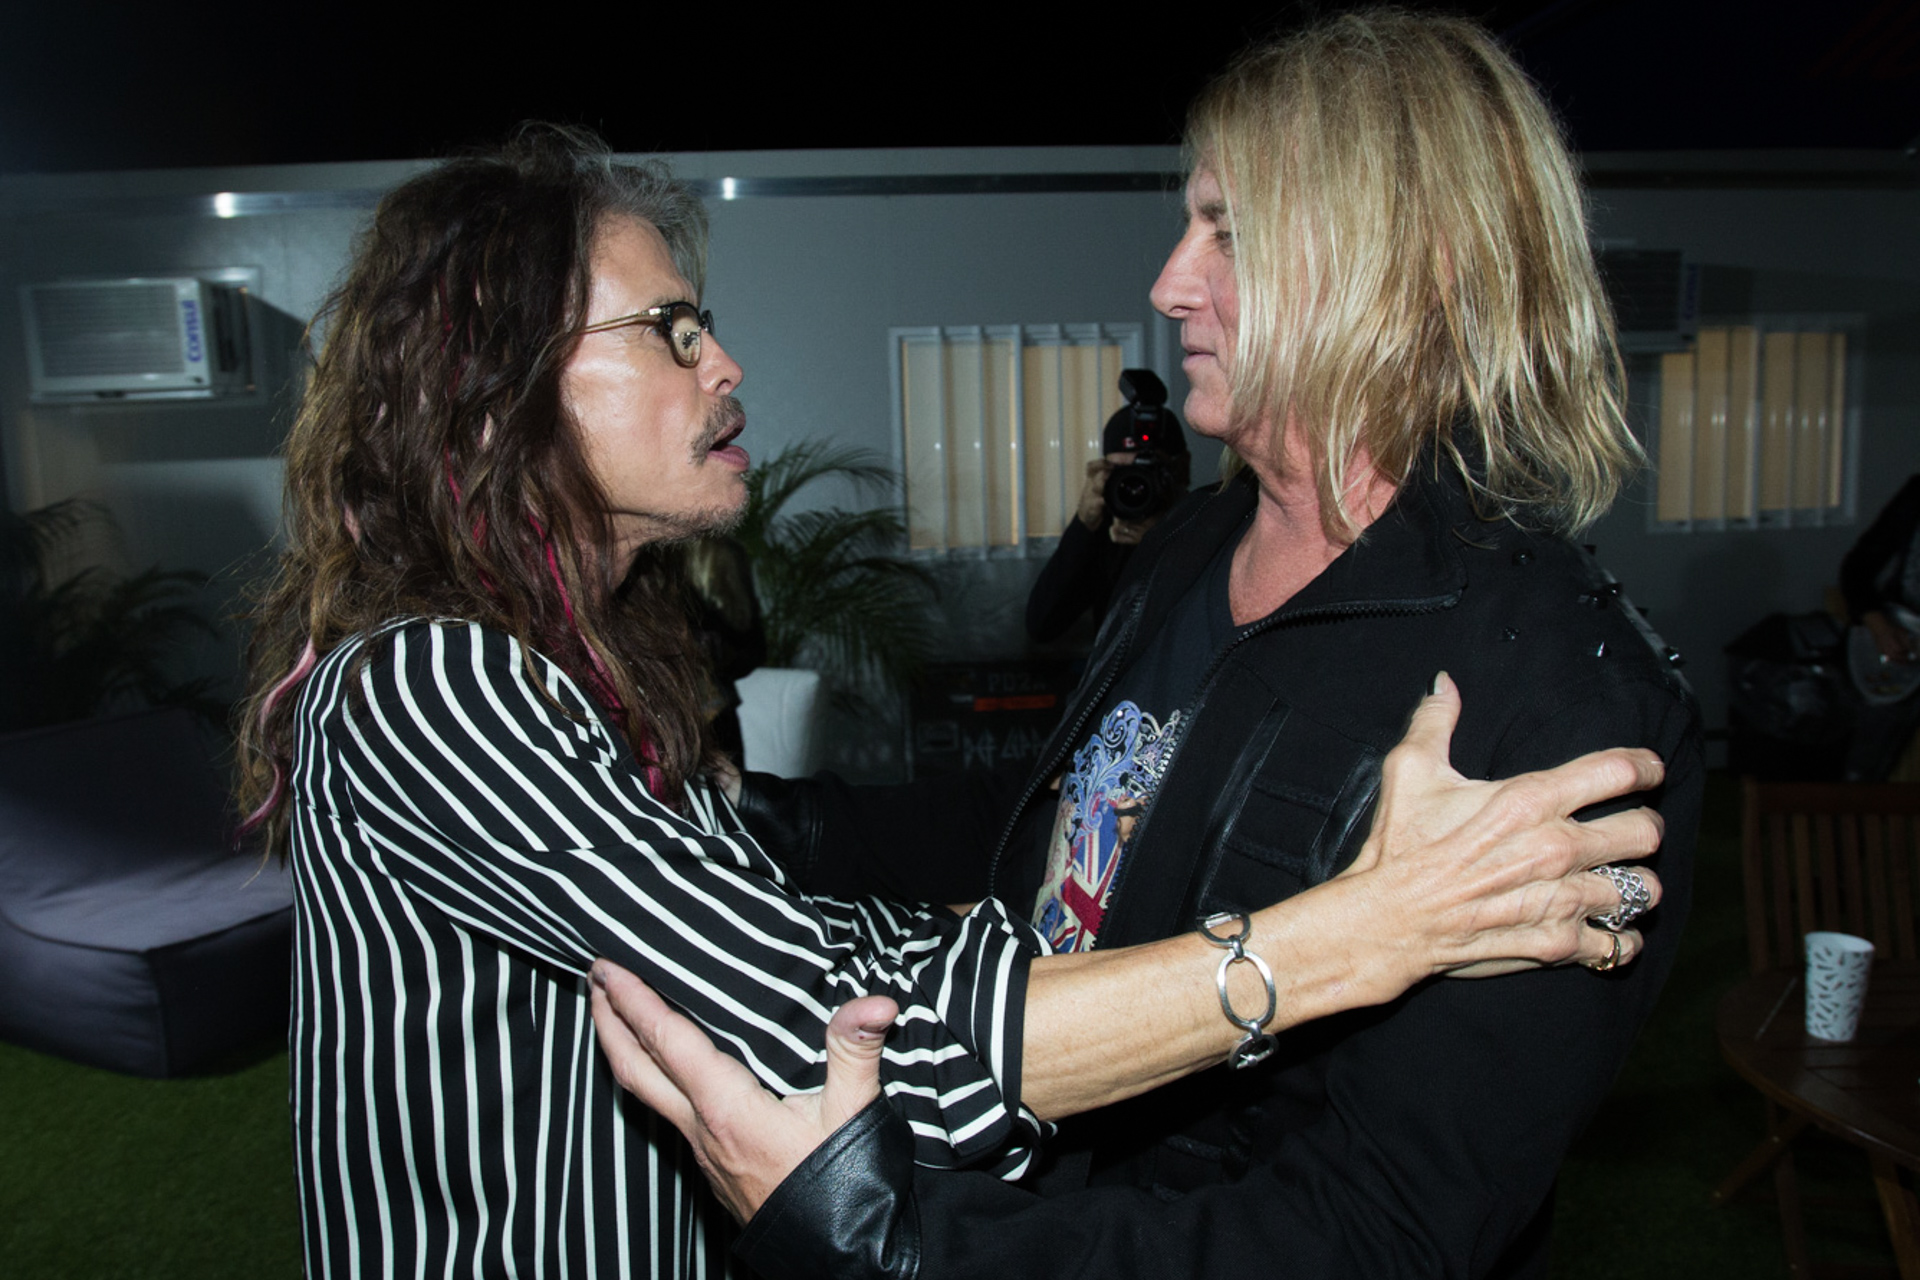 Backstage Def Leppard + Aerosmith